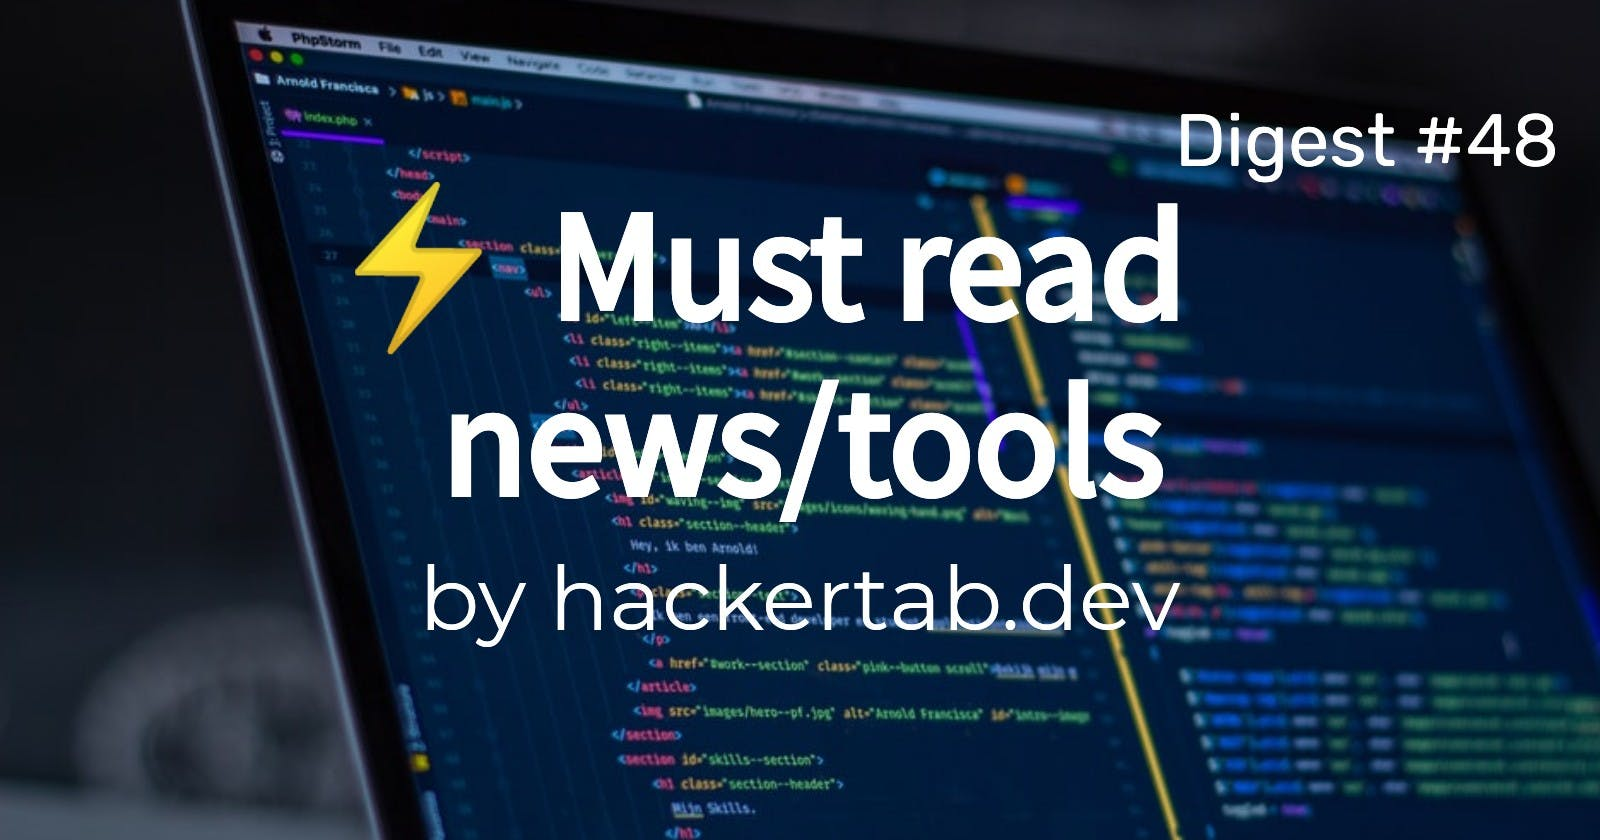 🔥 Trending News, Repos and Products of the day - Digest #48